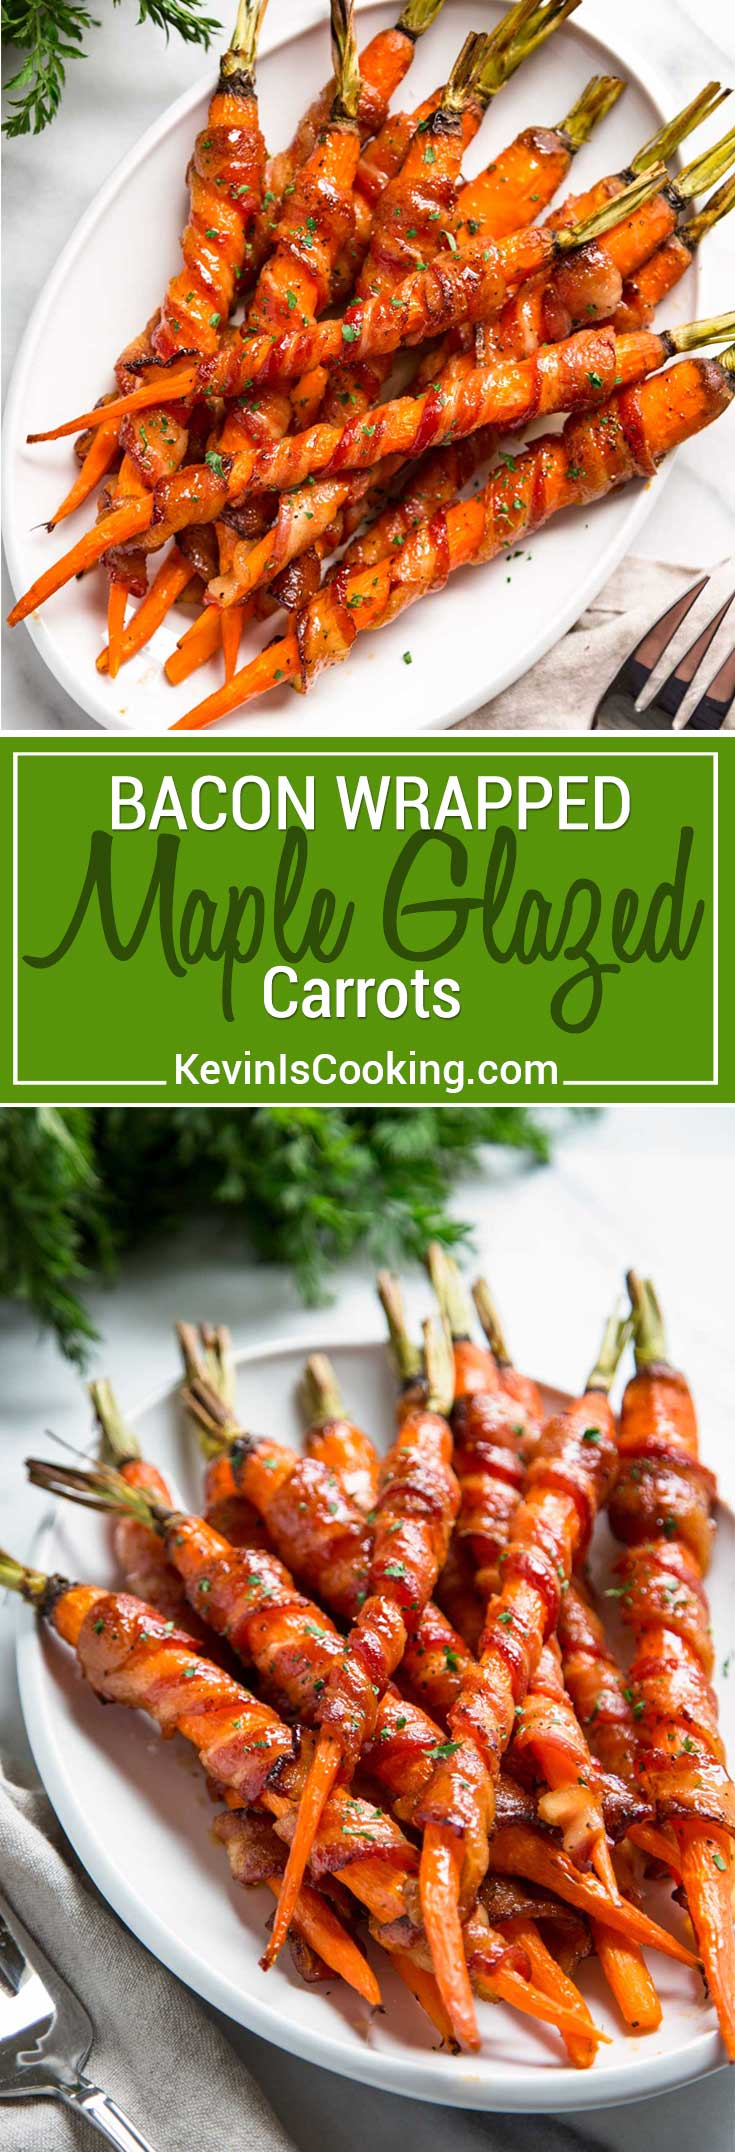 These Bacon Wrapped Carrots get sprinkled with black pepper and roasted, then basted with a maple Sriracha sauce until crispy. So easy and good!